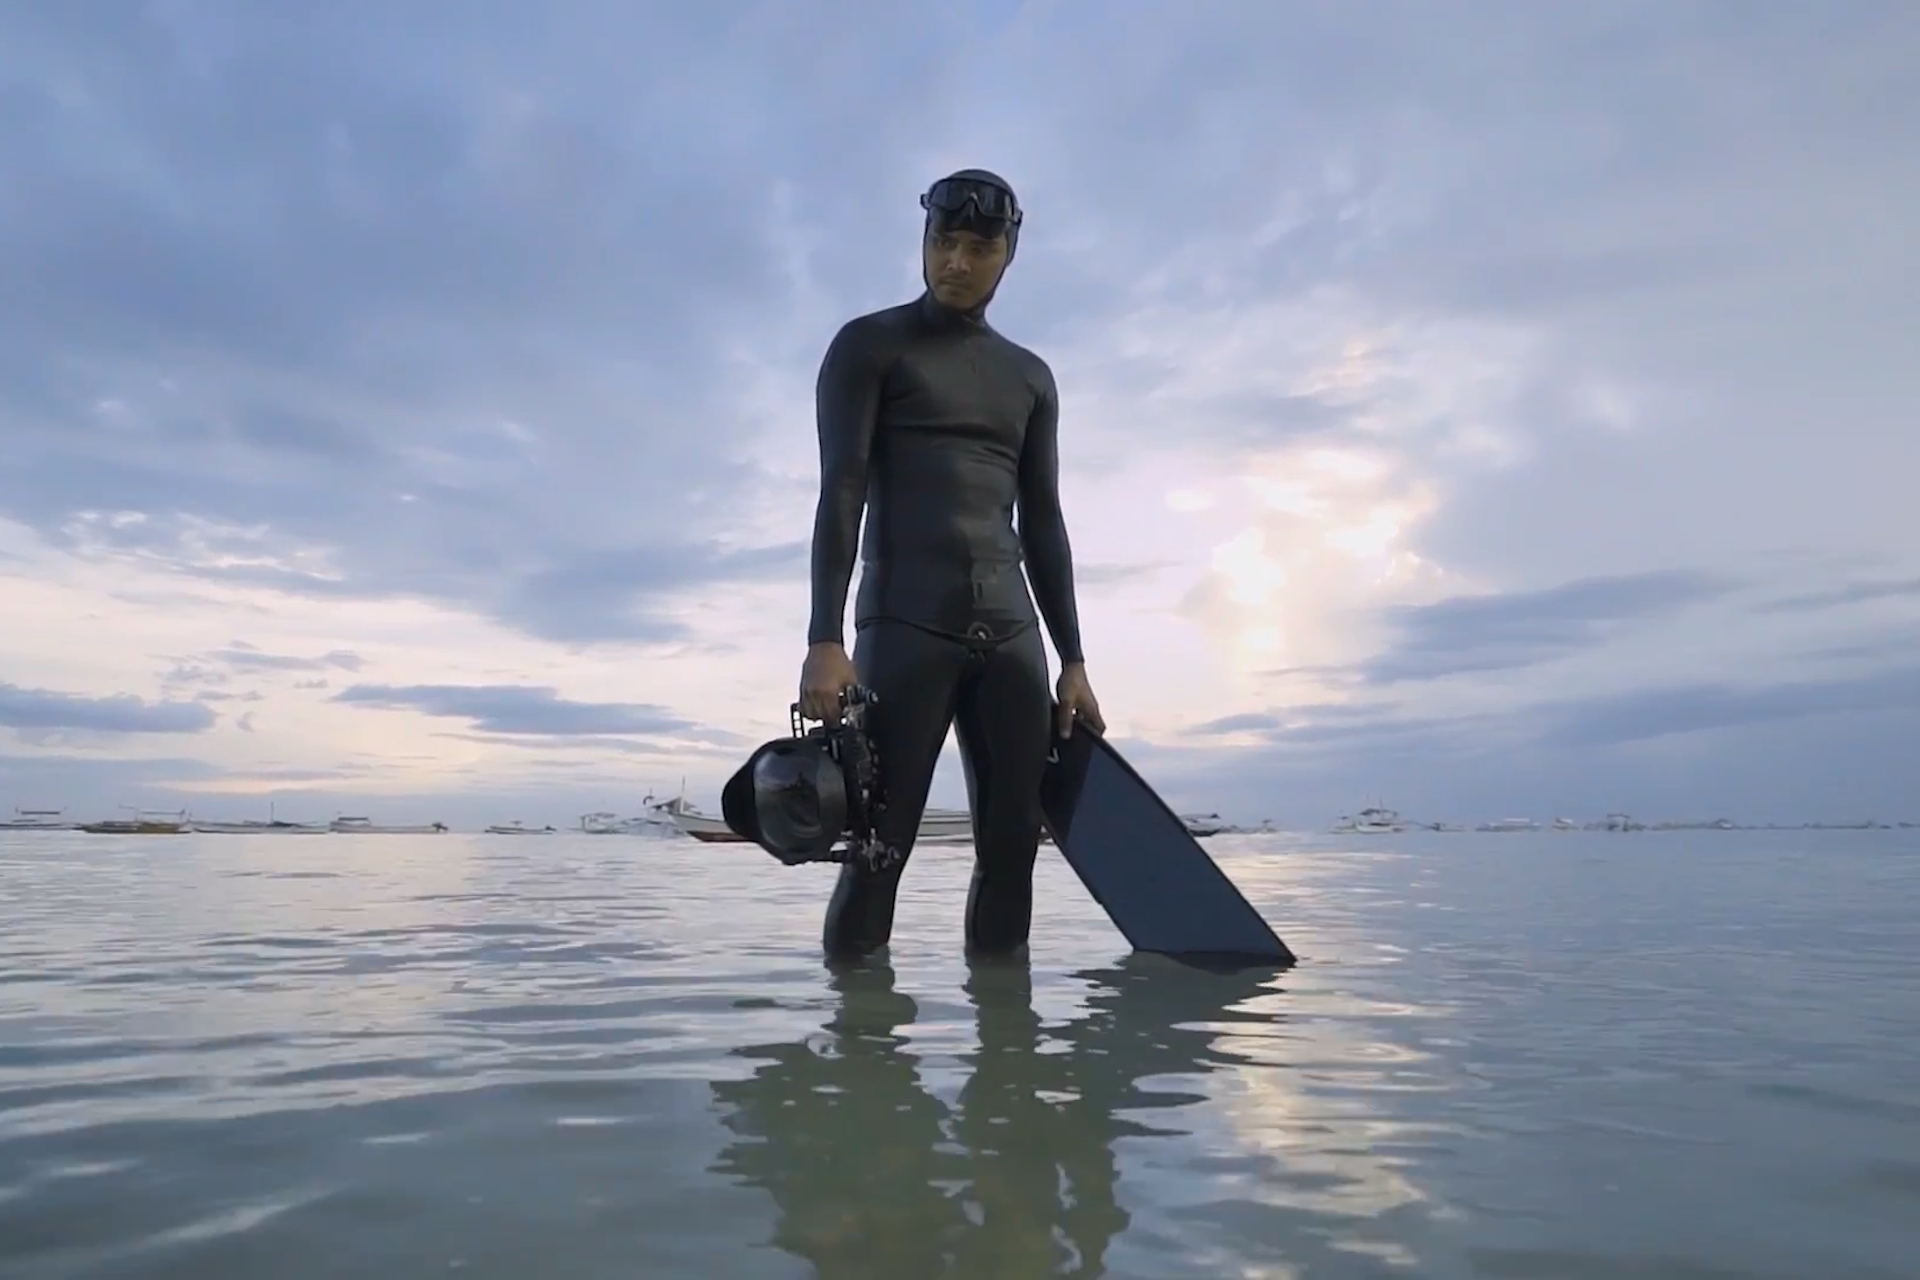 Tribute Freediver depicts the story of national freediving record-holder Martin Zapanta, and how conquering his fears propelled a passion for photographing the deep blue on a single breath.